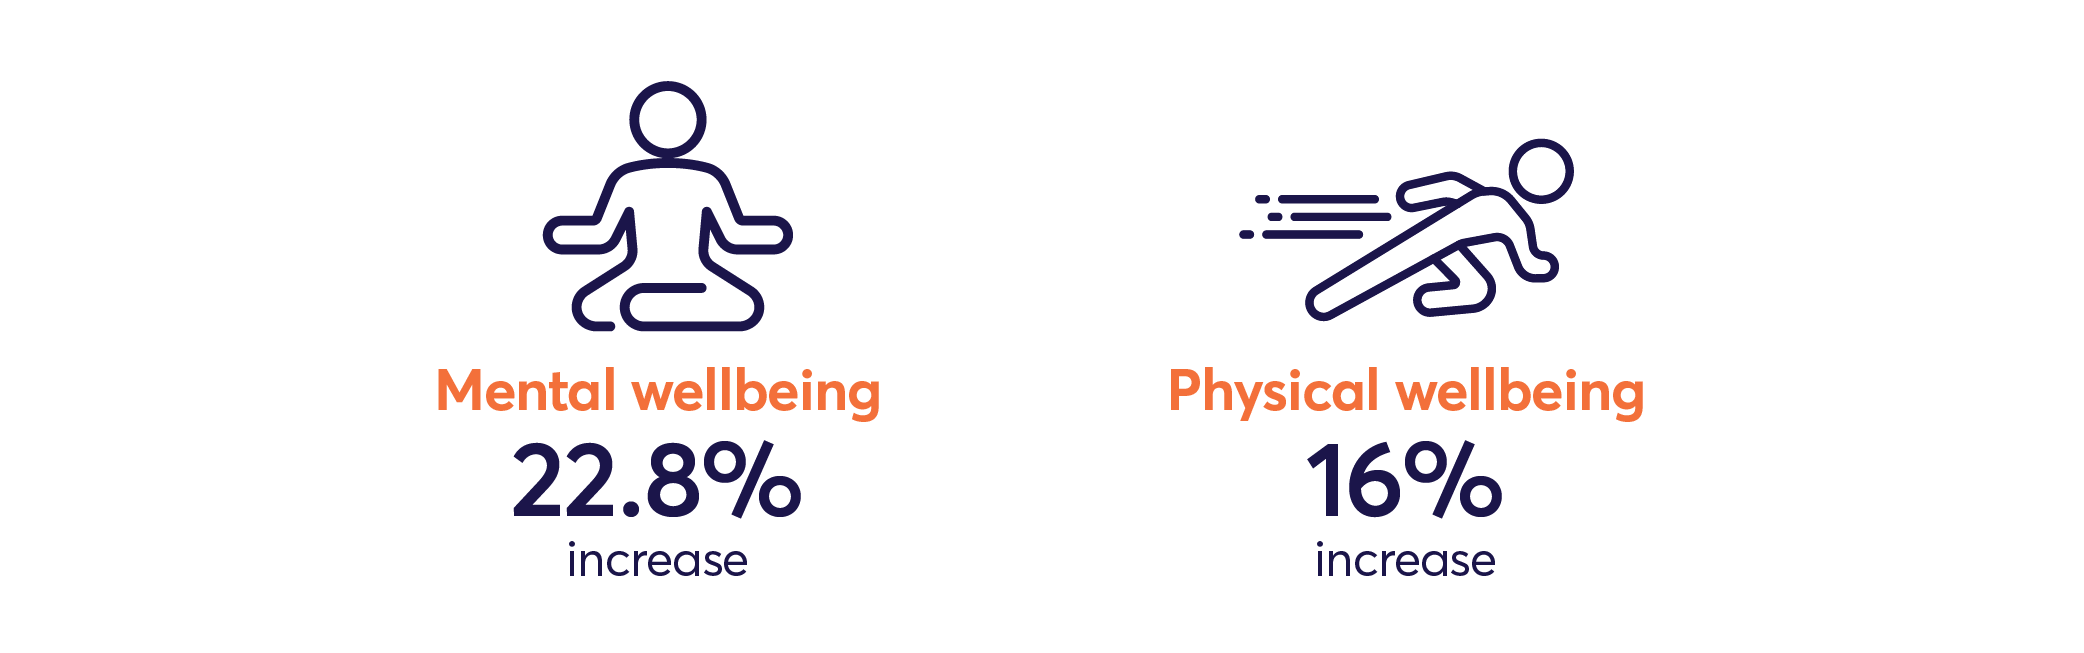 Mental wellbeing and Physical wellbeing infographic